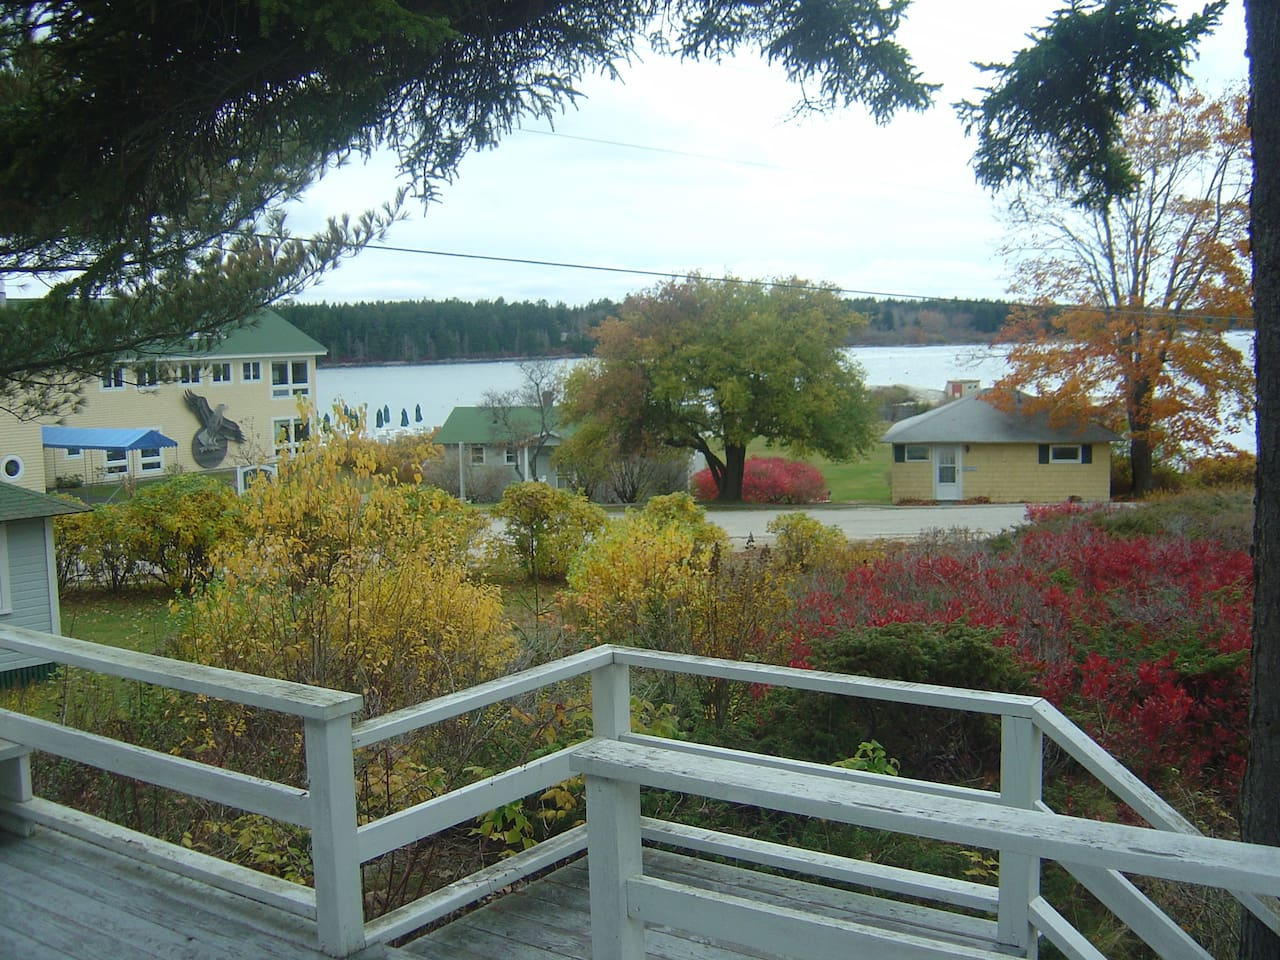 View from the front deck to gardens and Sebasco Harbor